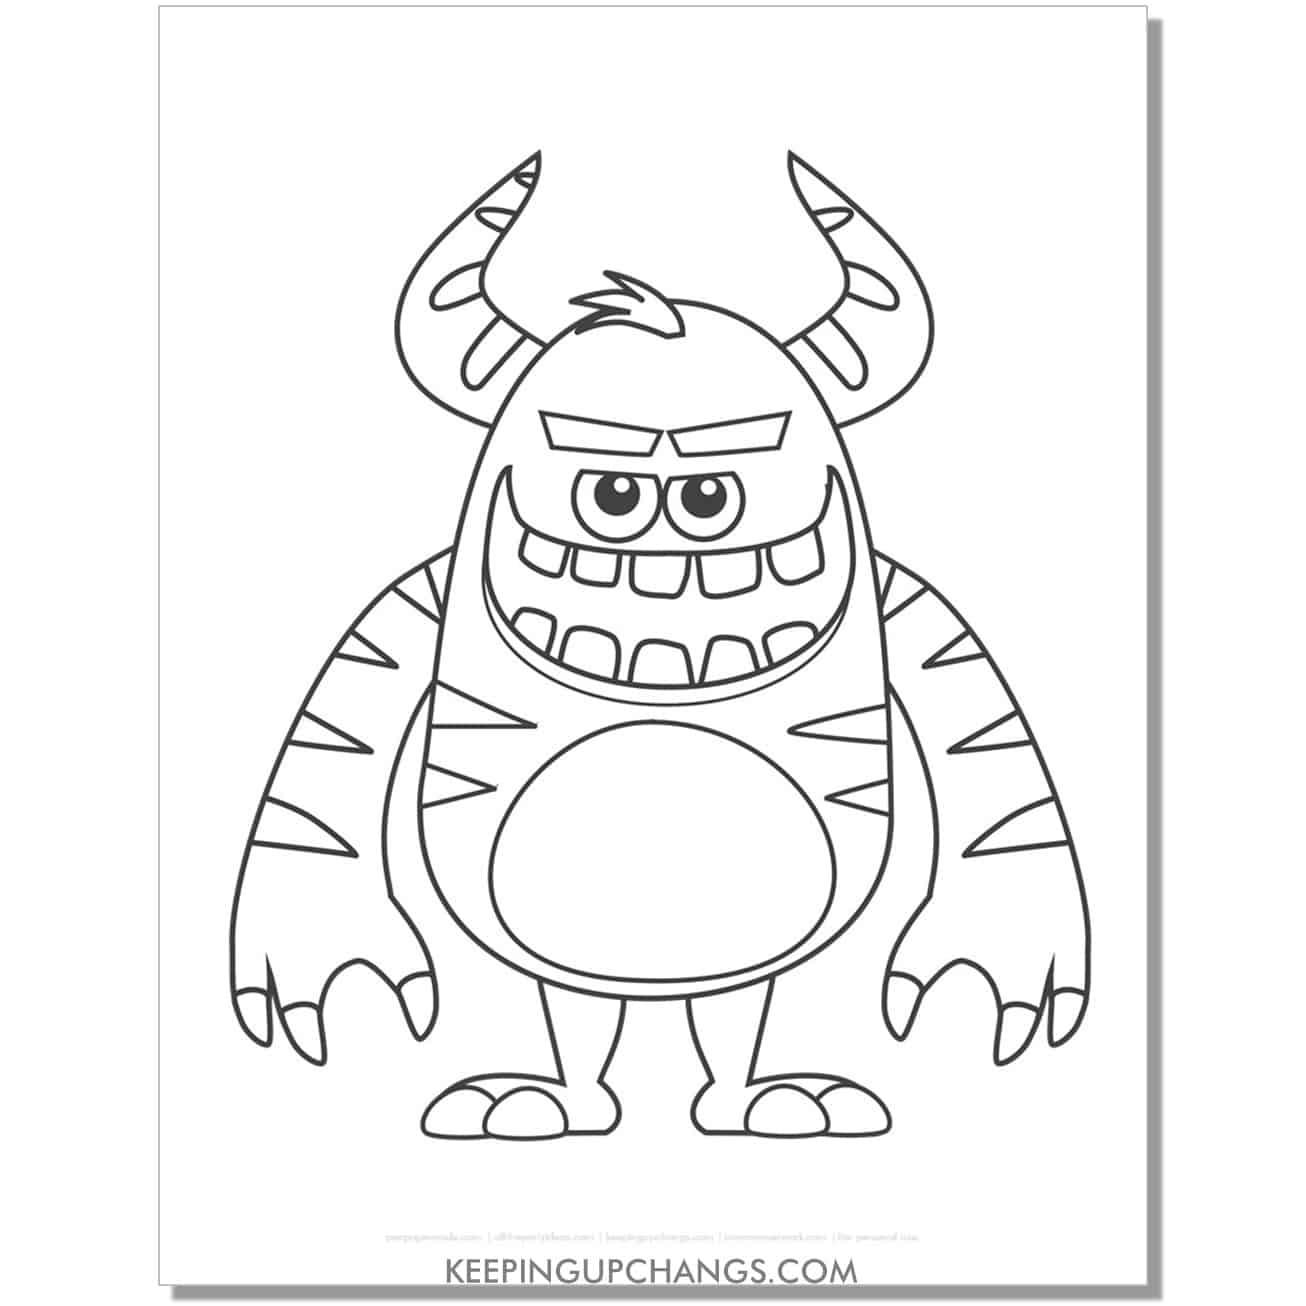 free striped monster coloring page.